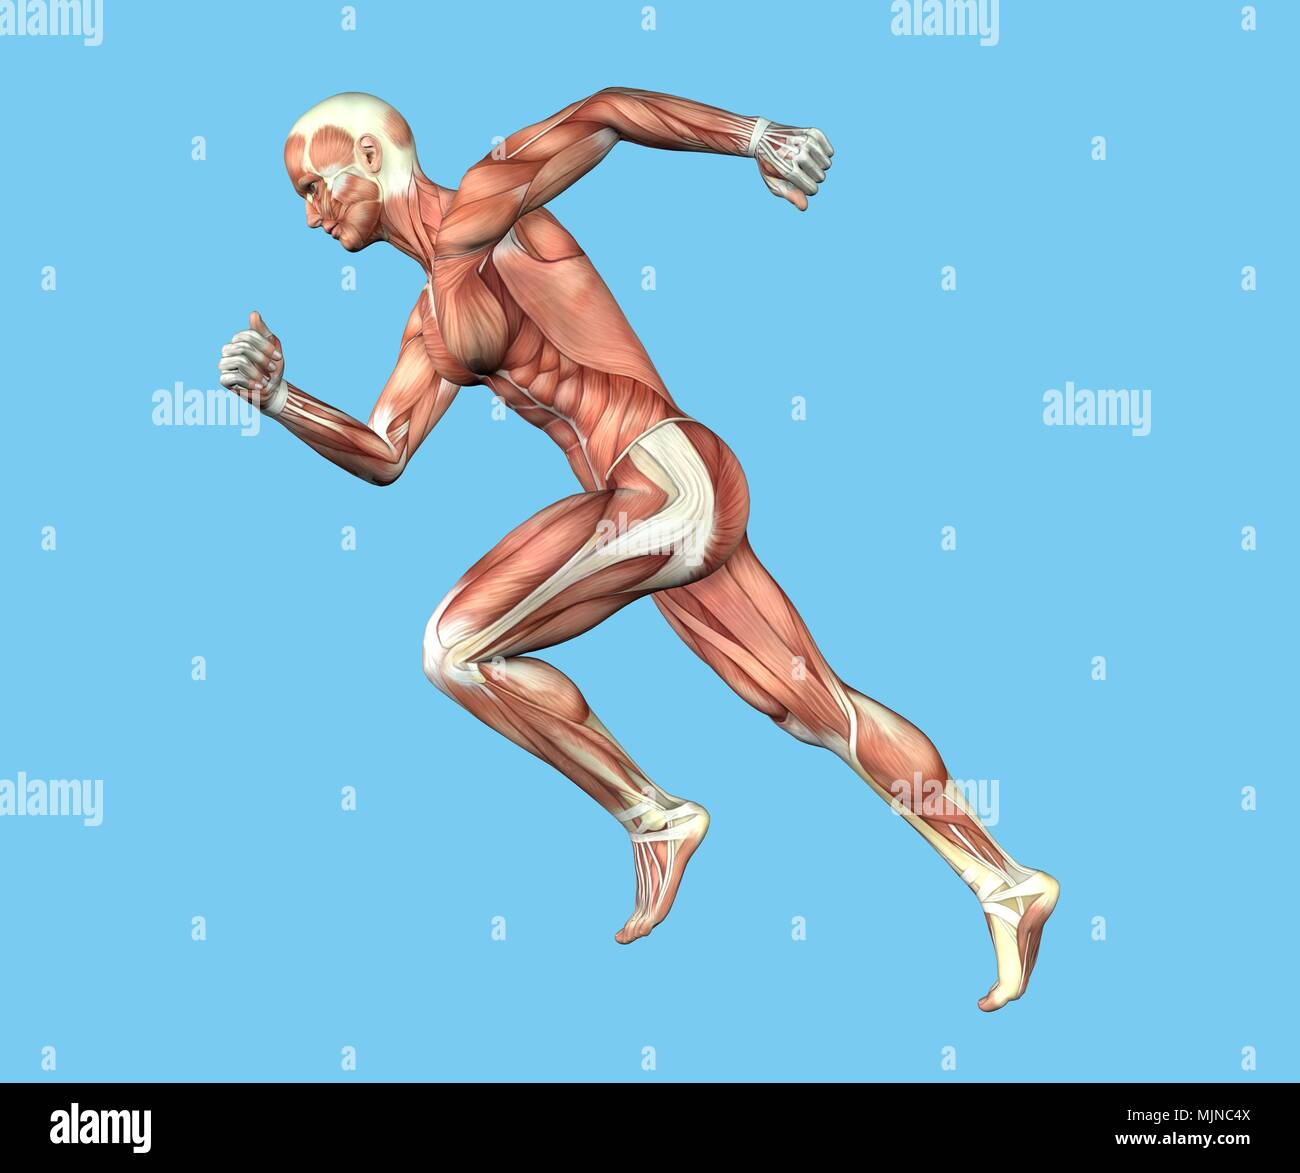 Muscles of Male Anatomy in Motion Stock Photo: 183638026 - Alamy